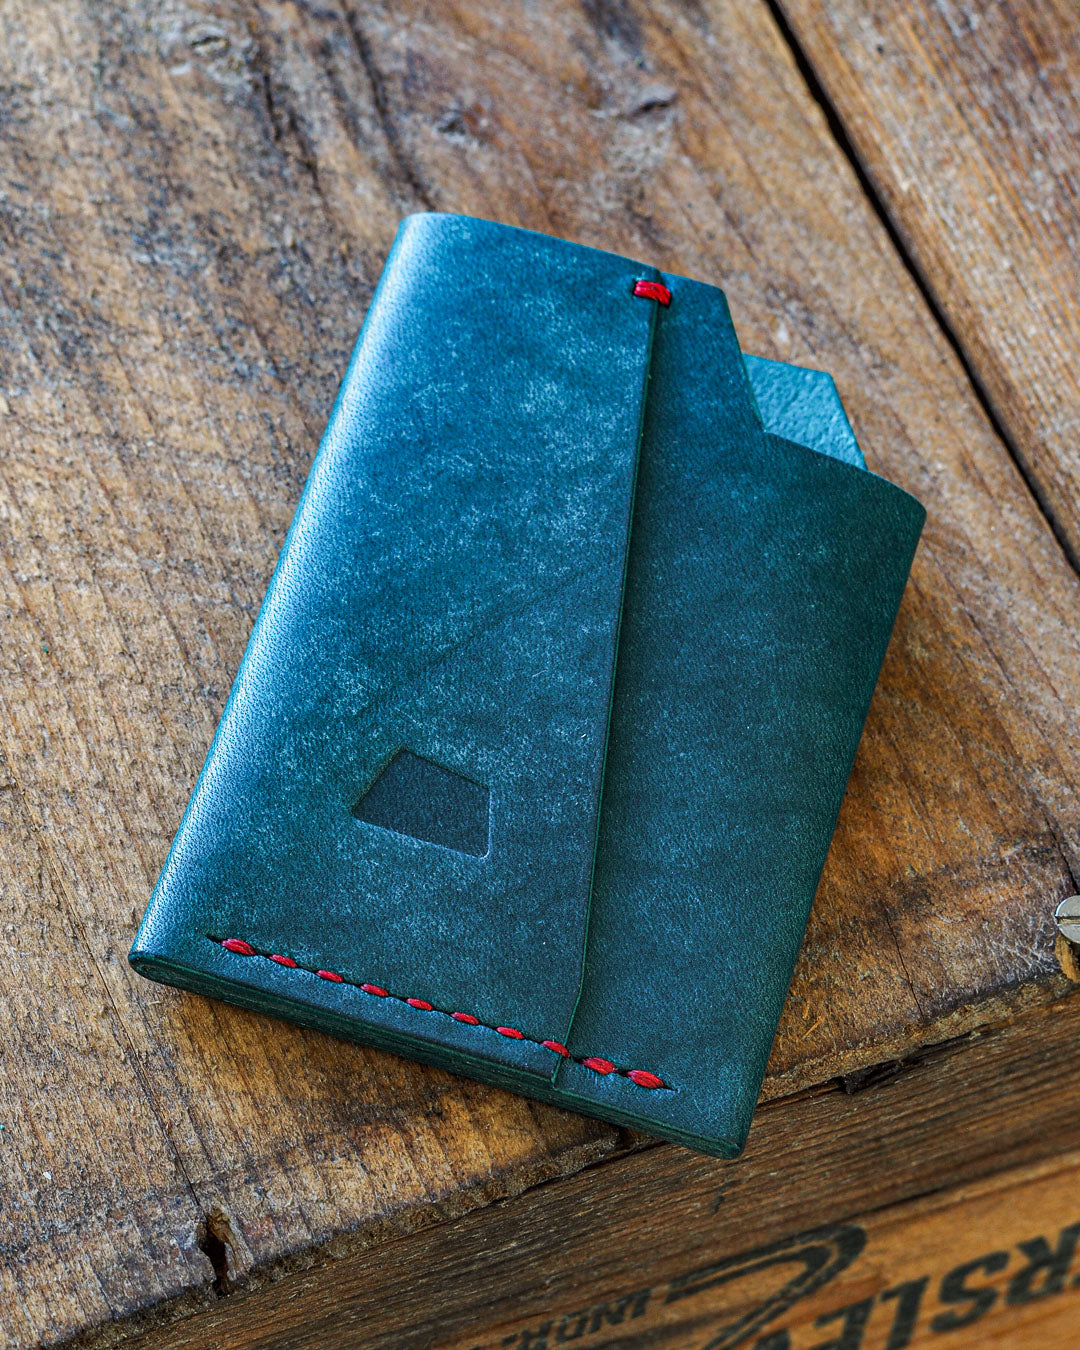 This Luava handmade leather wallet is Vortex. It's handcrafted in Finland with vegetable-tanned, full-grain leather. It's a card holder for seven cards and folded cash. Compact and minimalistic wallet with unique design.